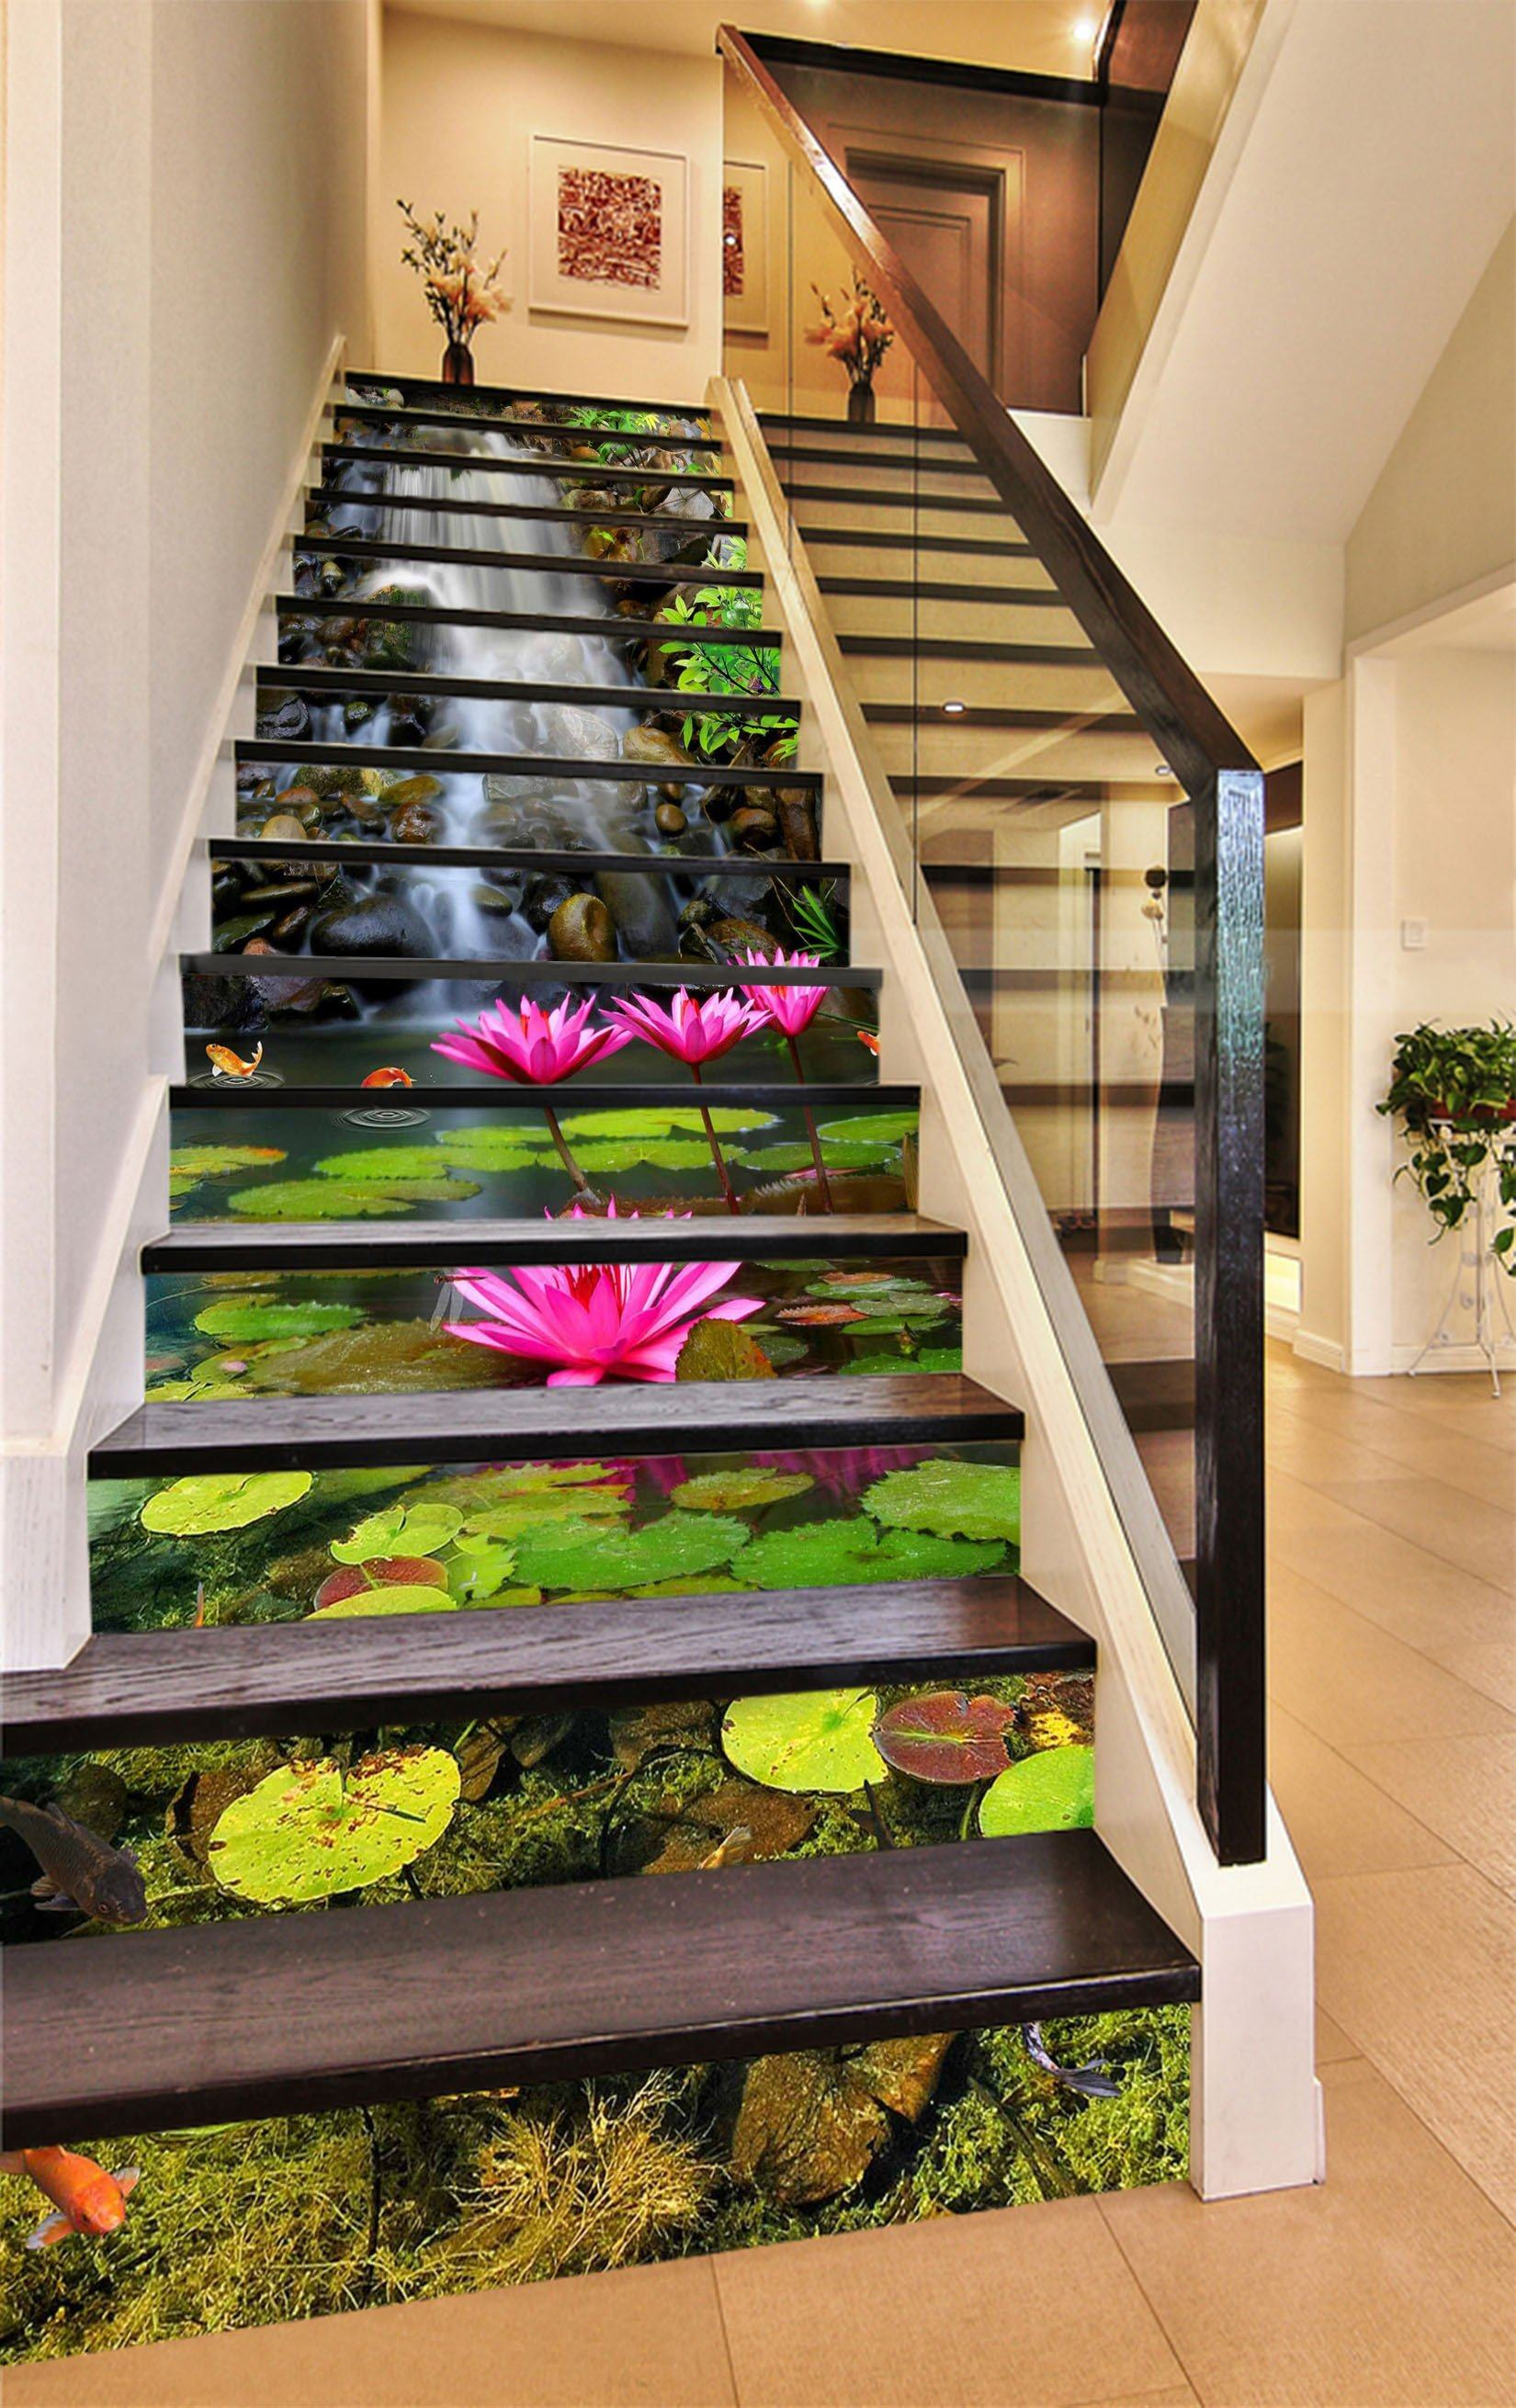 3D Beautiful Water Lily 1604 Stair Risers Wallpaper AJ Wallpaper